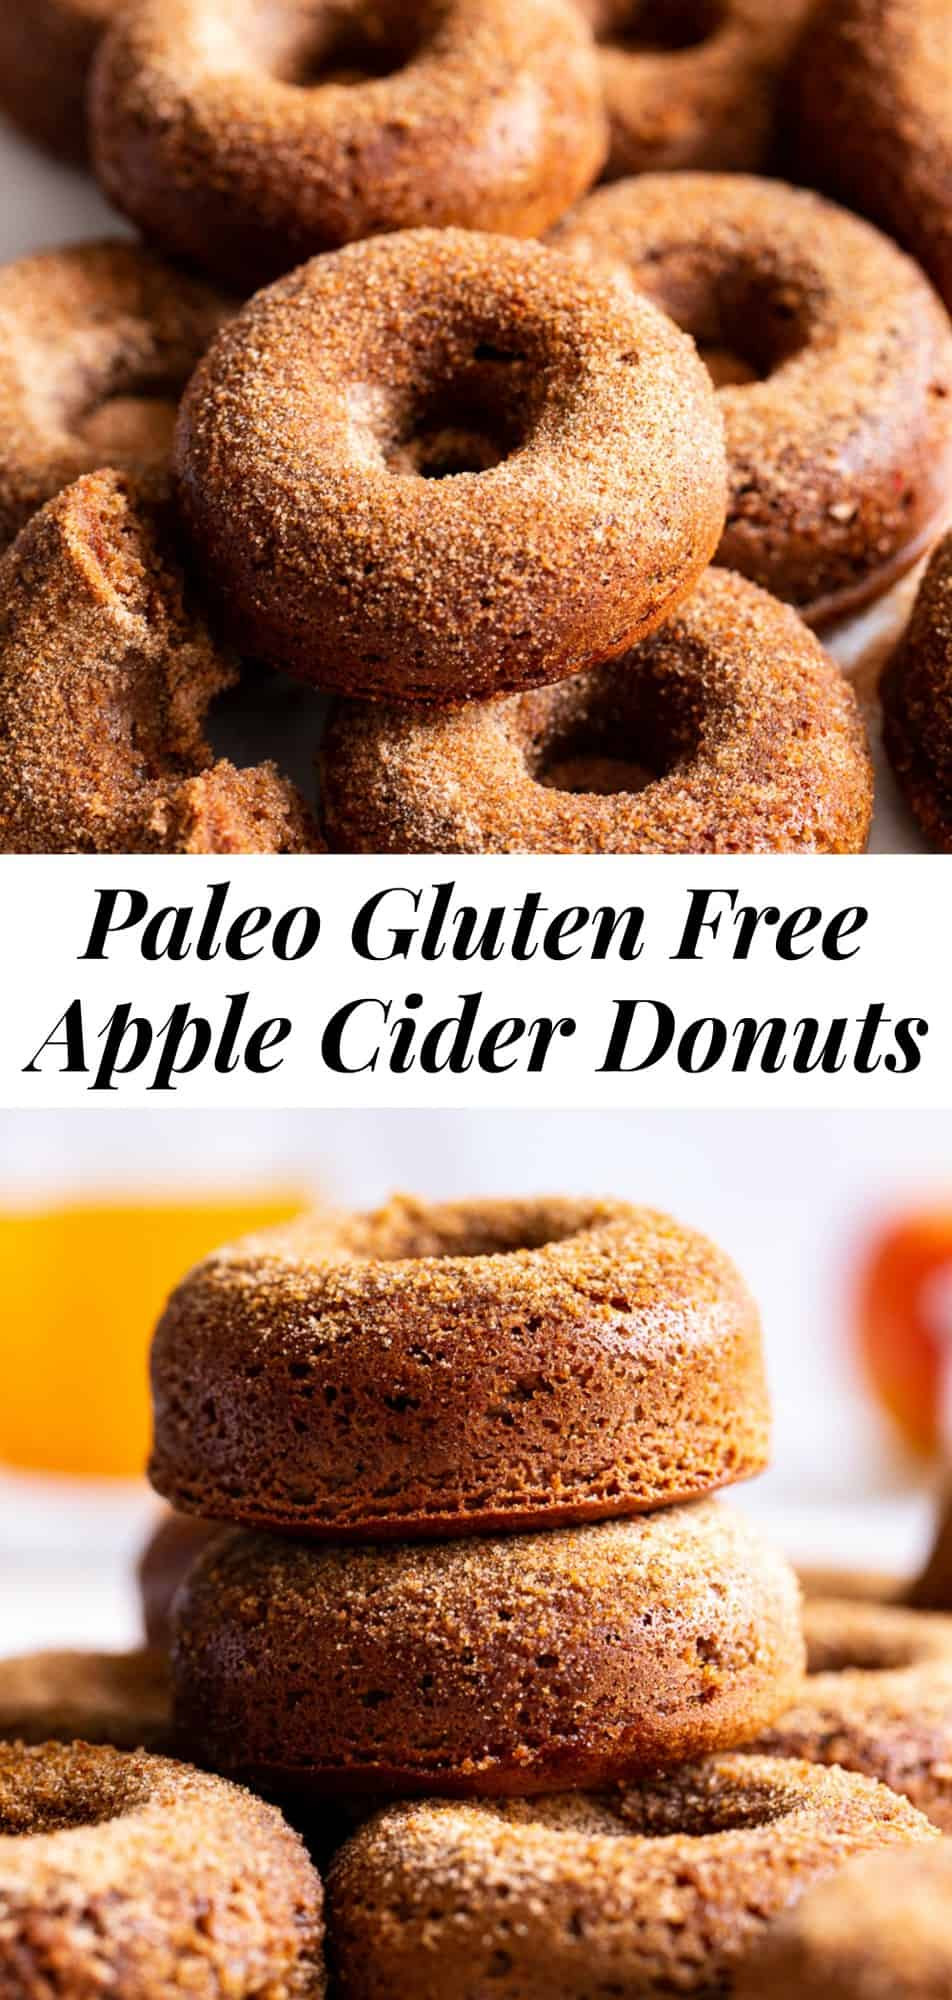 This healthier paleo version of classic apple cider donuts are a delicious treat to bake for fall! They're soft and tender, filled with apple pie spice and cinnamon sugar flavor yet they're refined sugar free. Kids love baking and eating them too! Gluten free, dairy free, grain free and paleo. #paleo #cleaneating #glutenfree